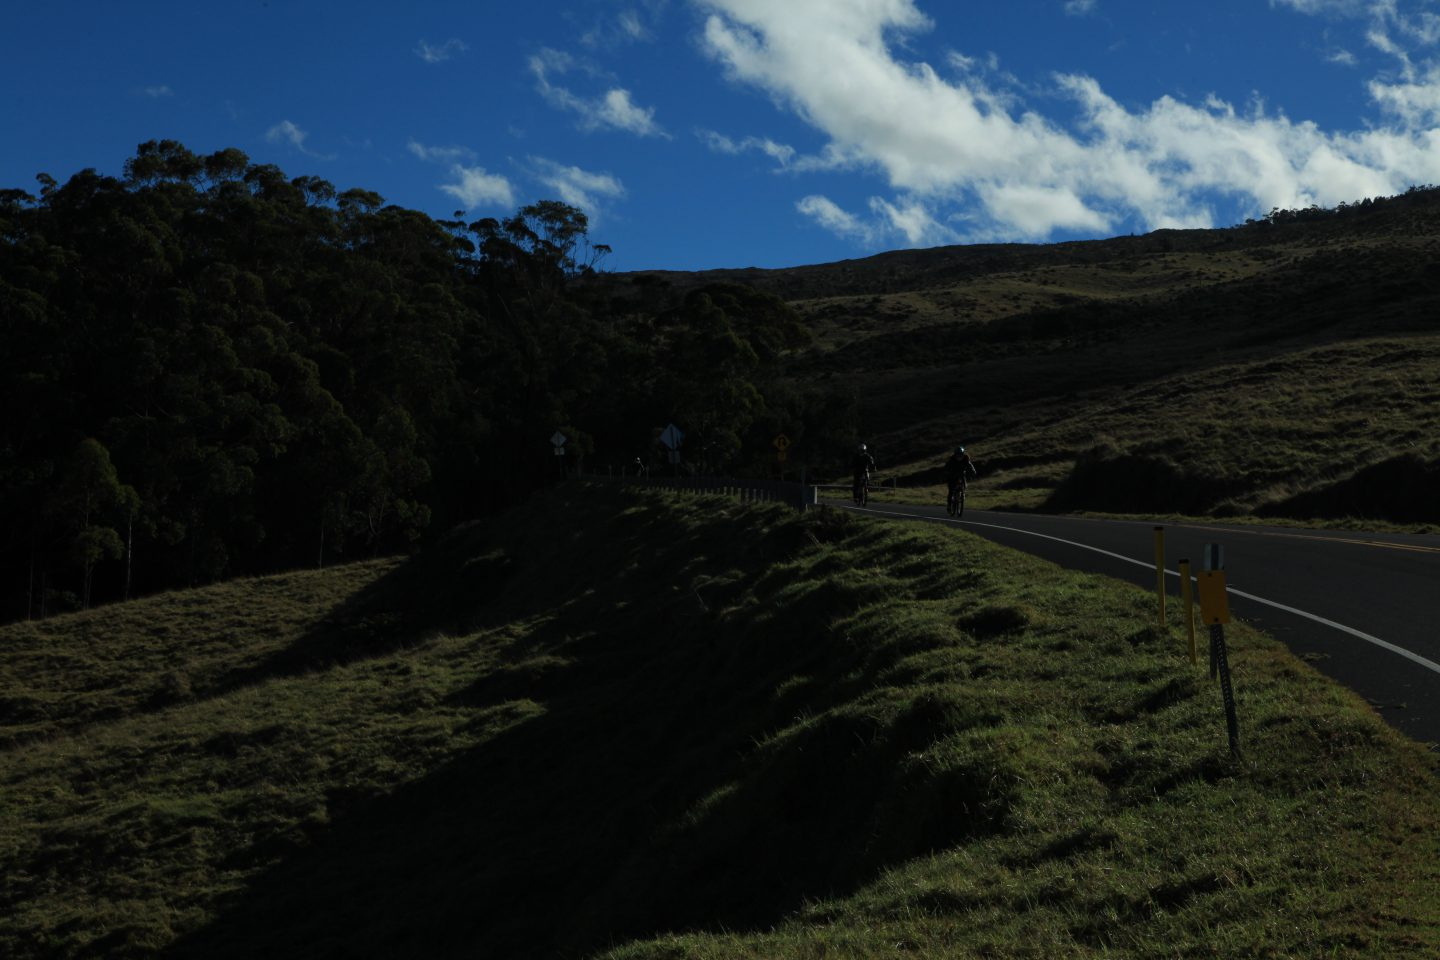 Experience a Multitude of Microclimates on the Maui Sunrise Volcano Tour